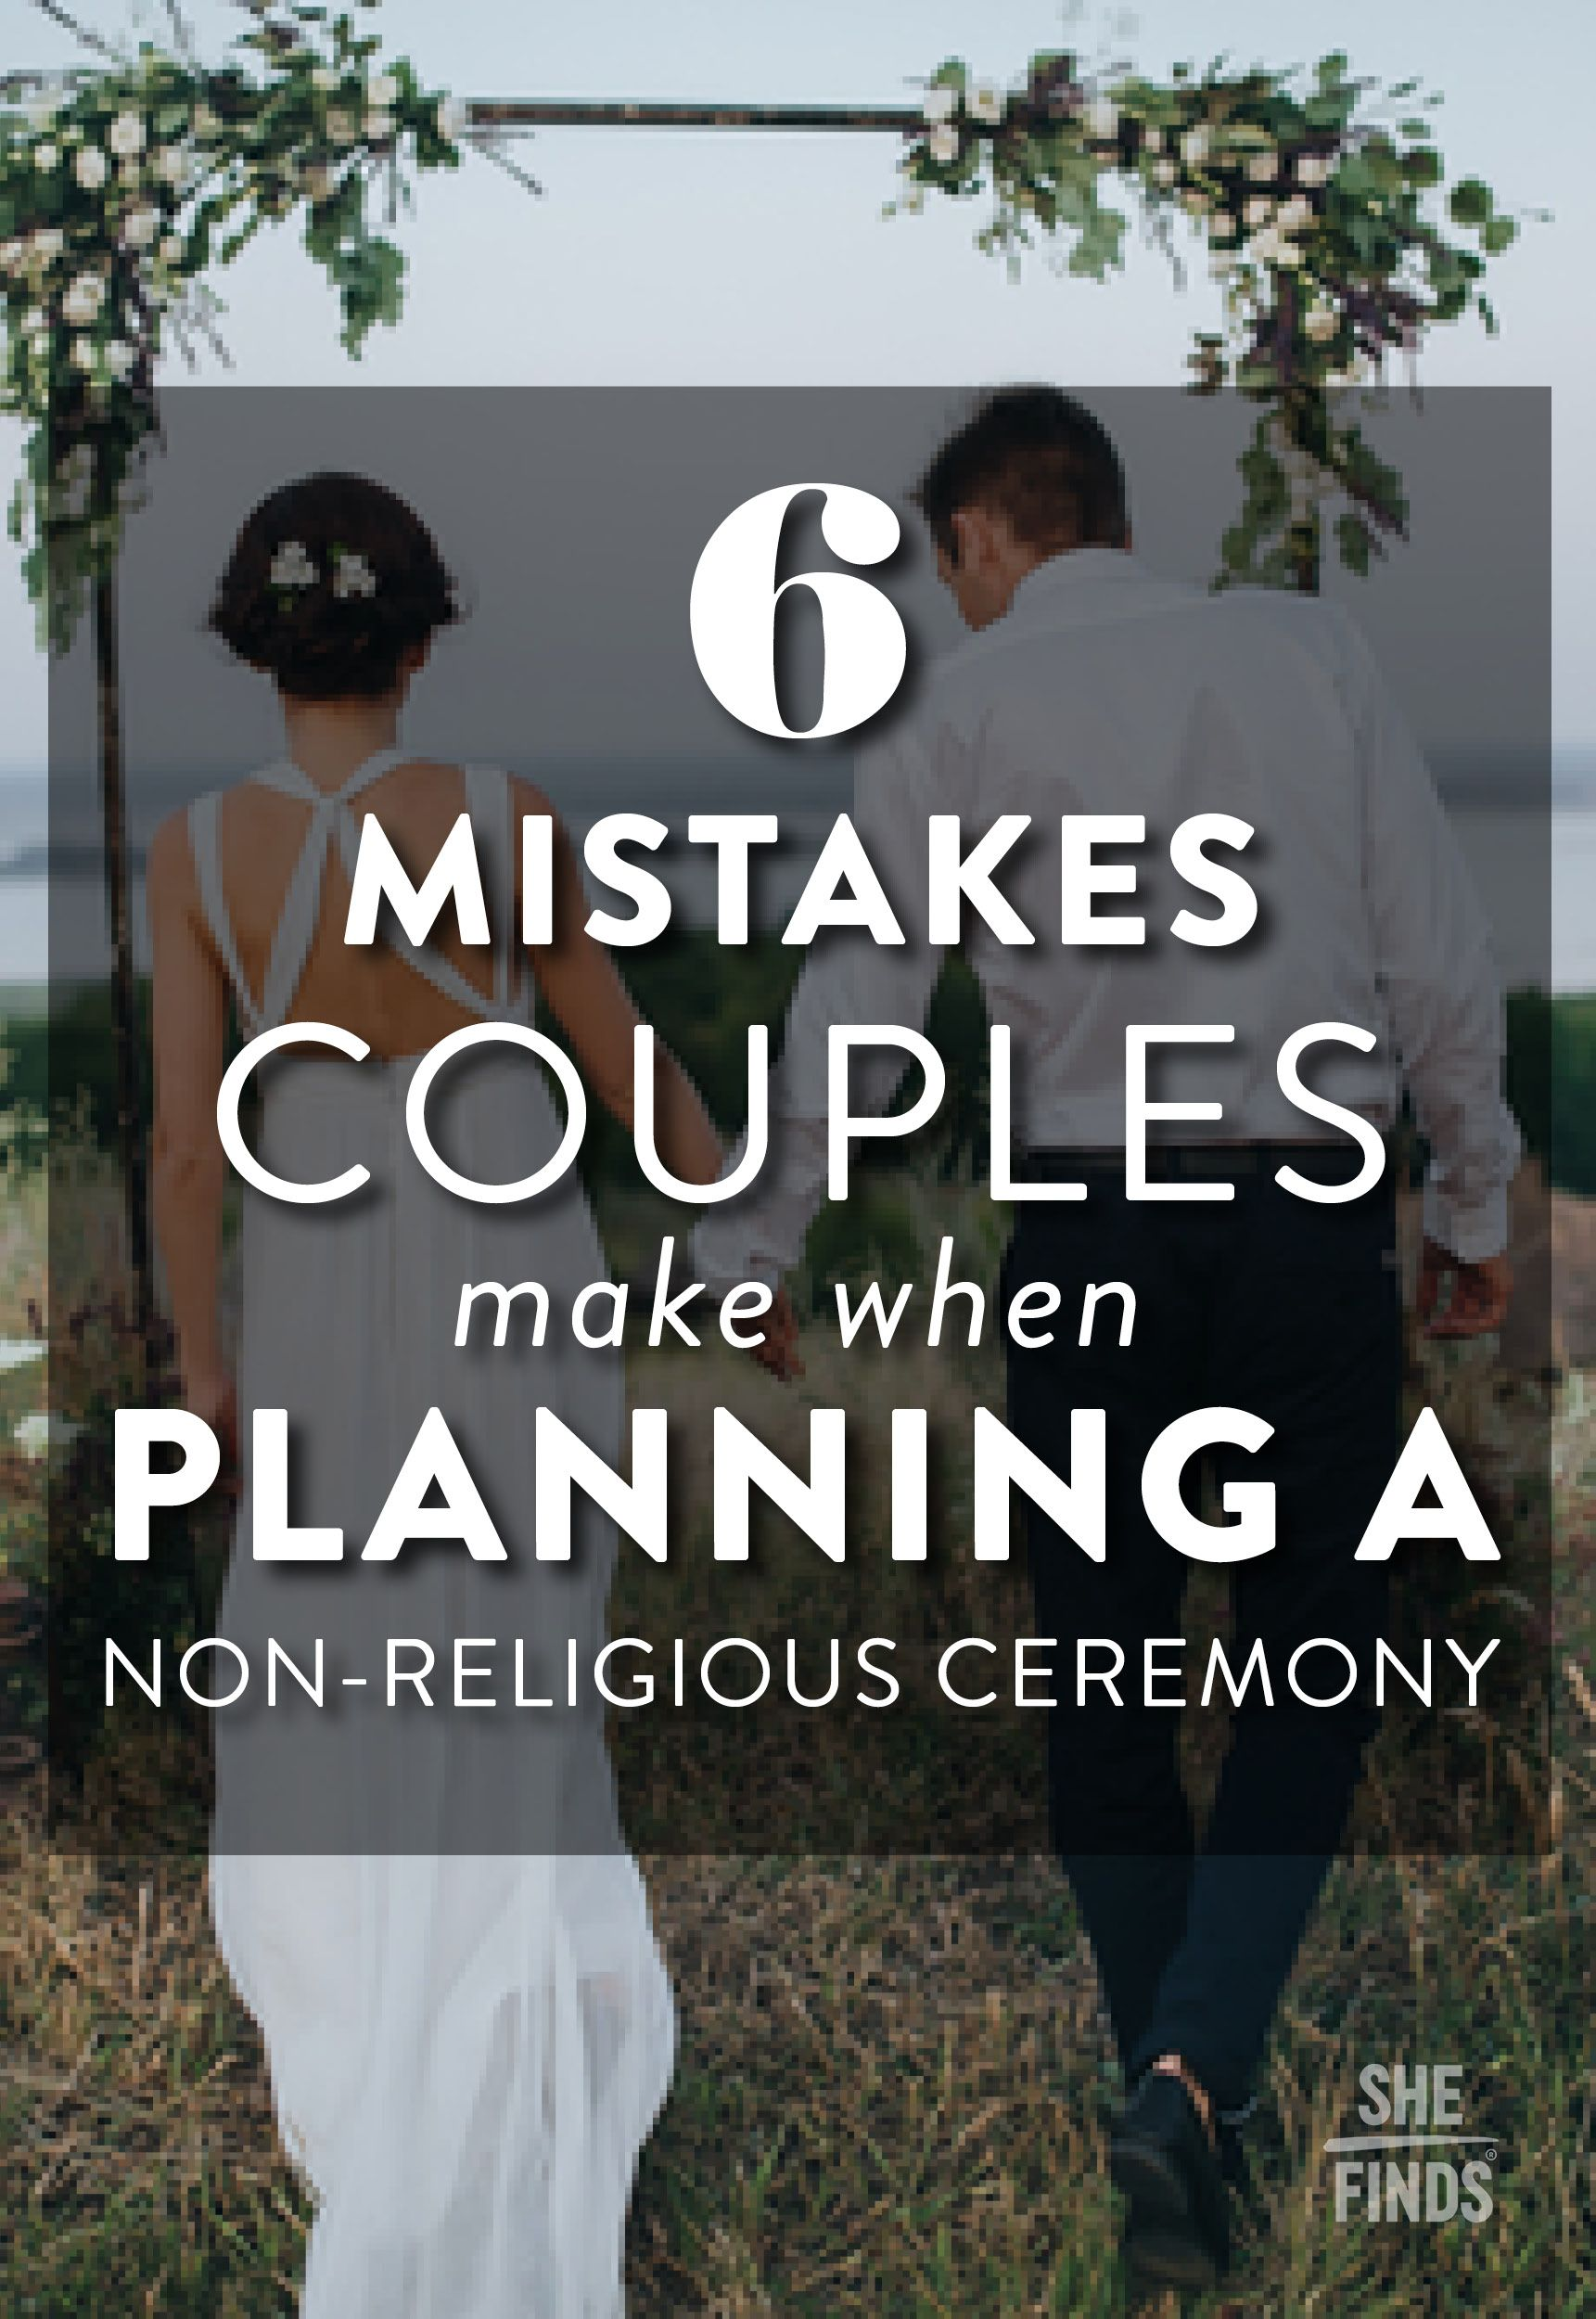 6 Mistakes Couples Make When Planning A Non-Religious Ceremony ...